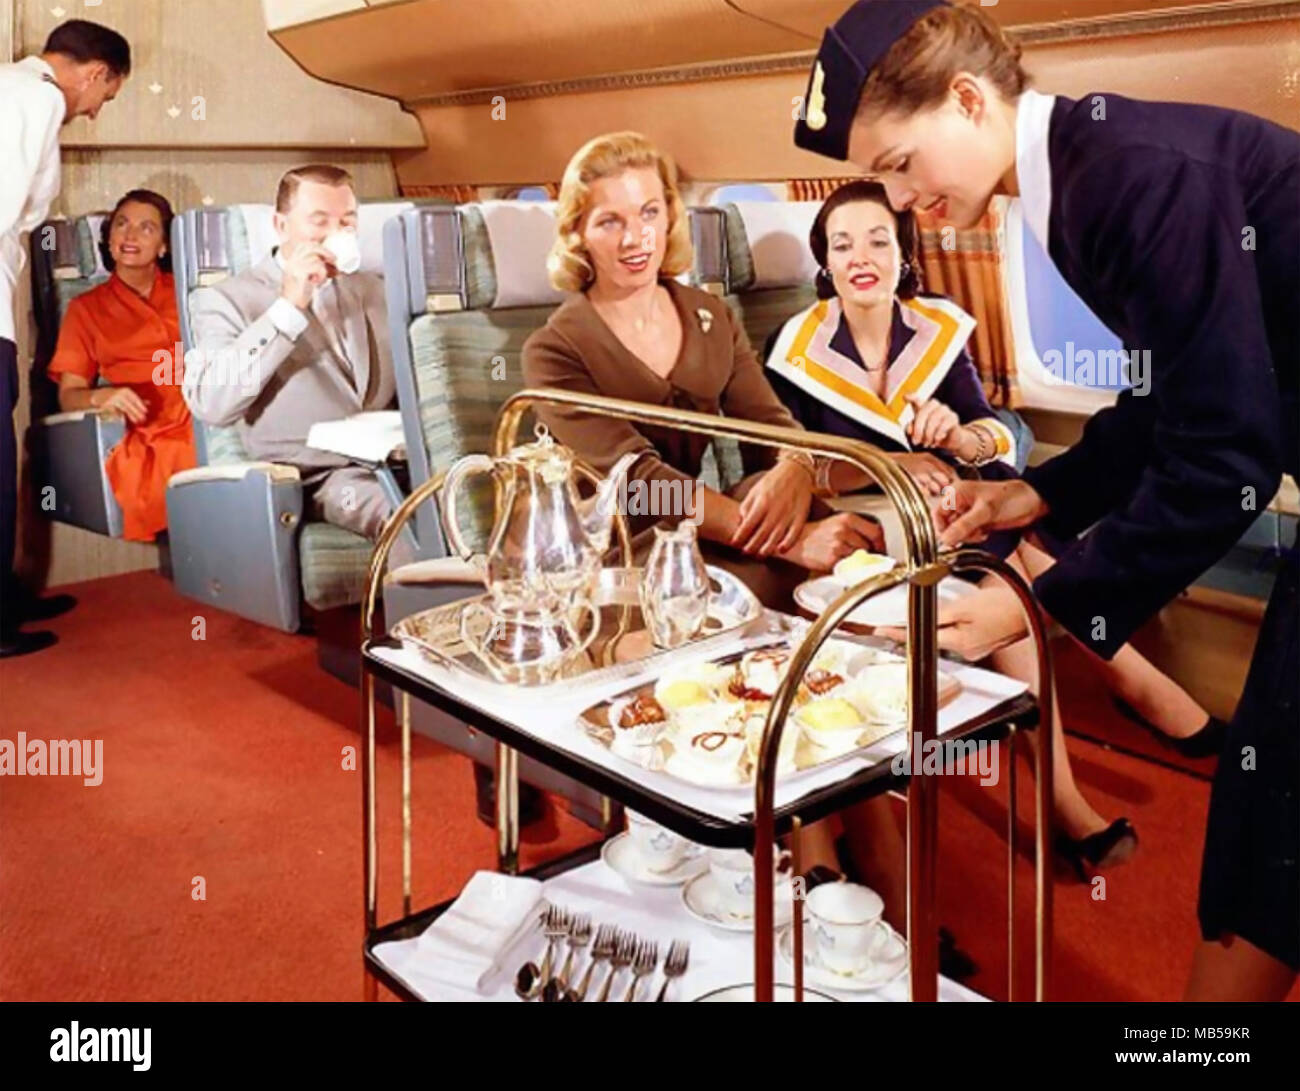 AIR TRAVEL IN 1950s - Stock Image